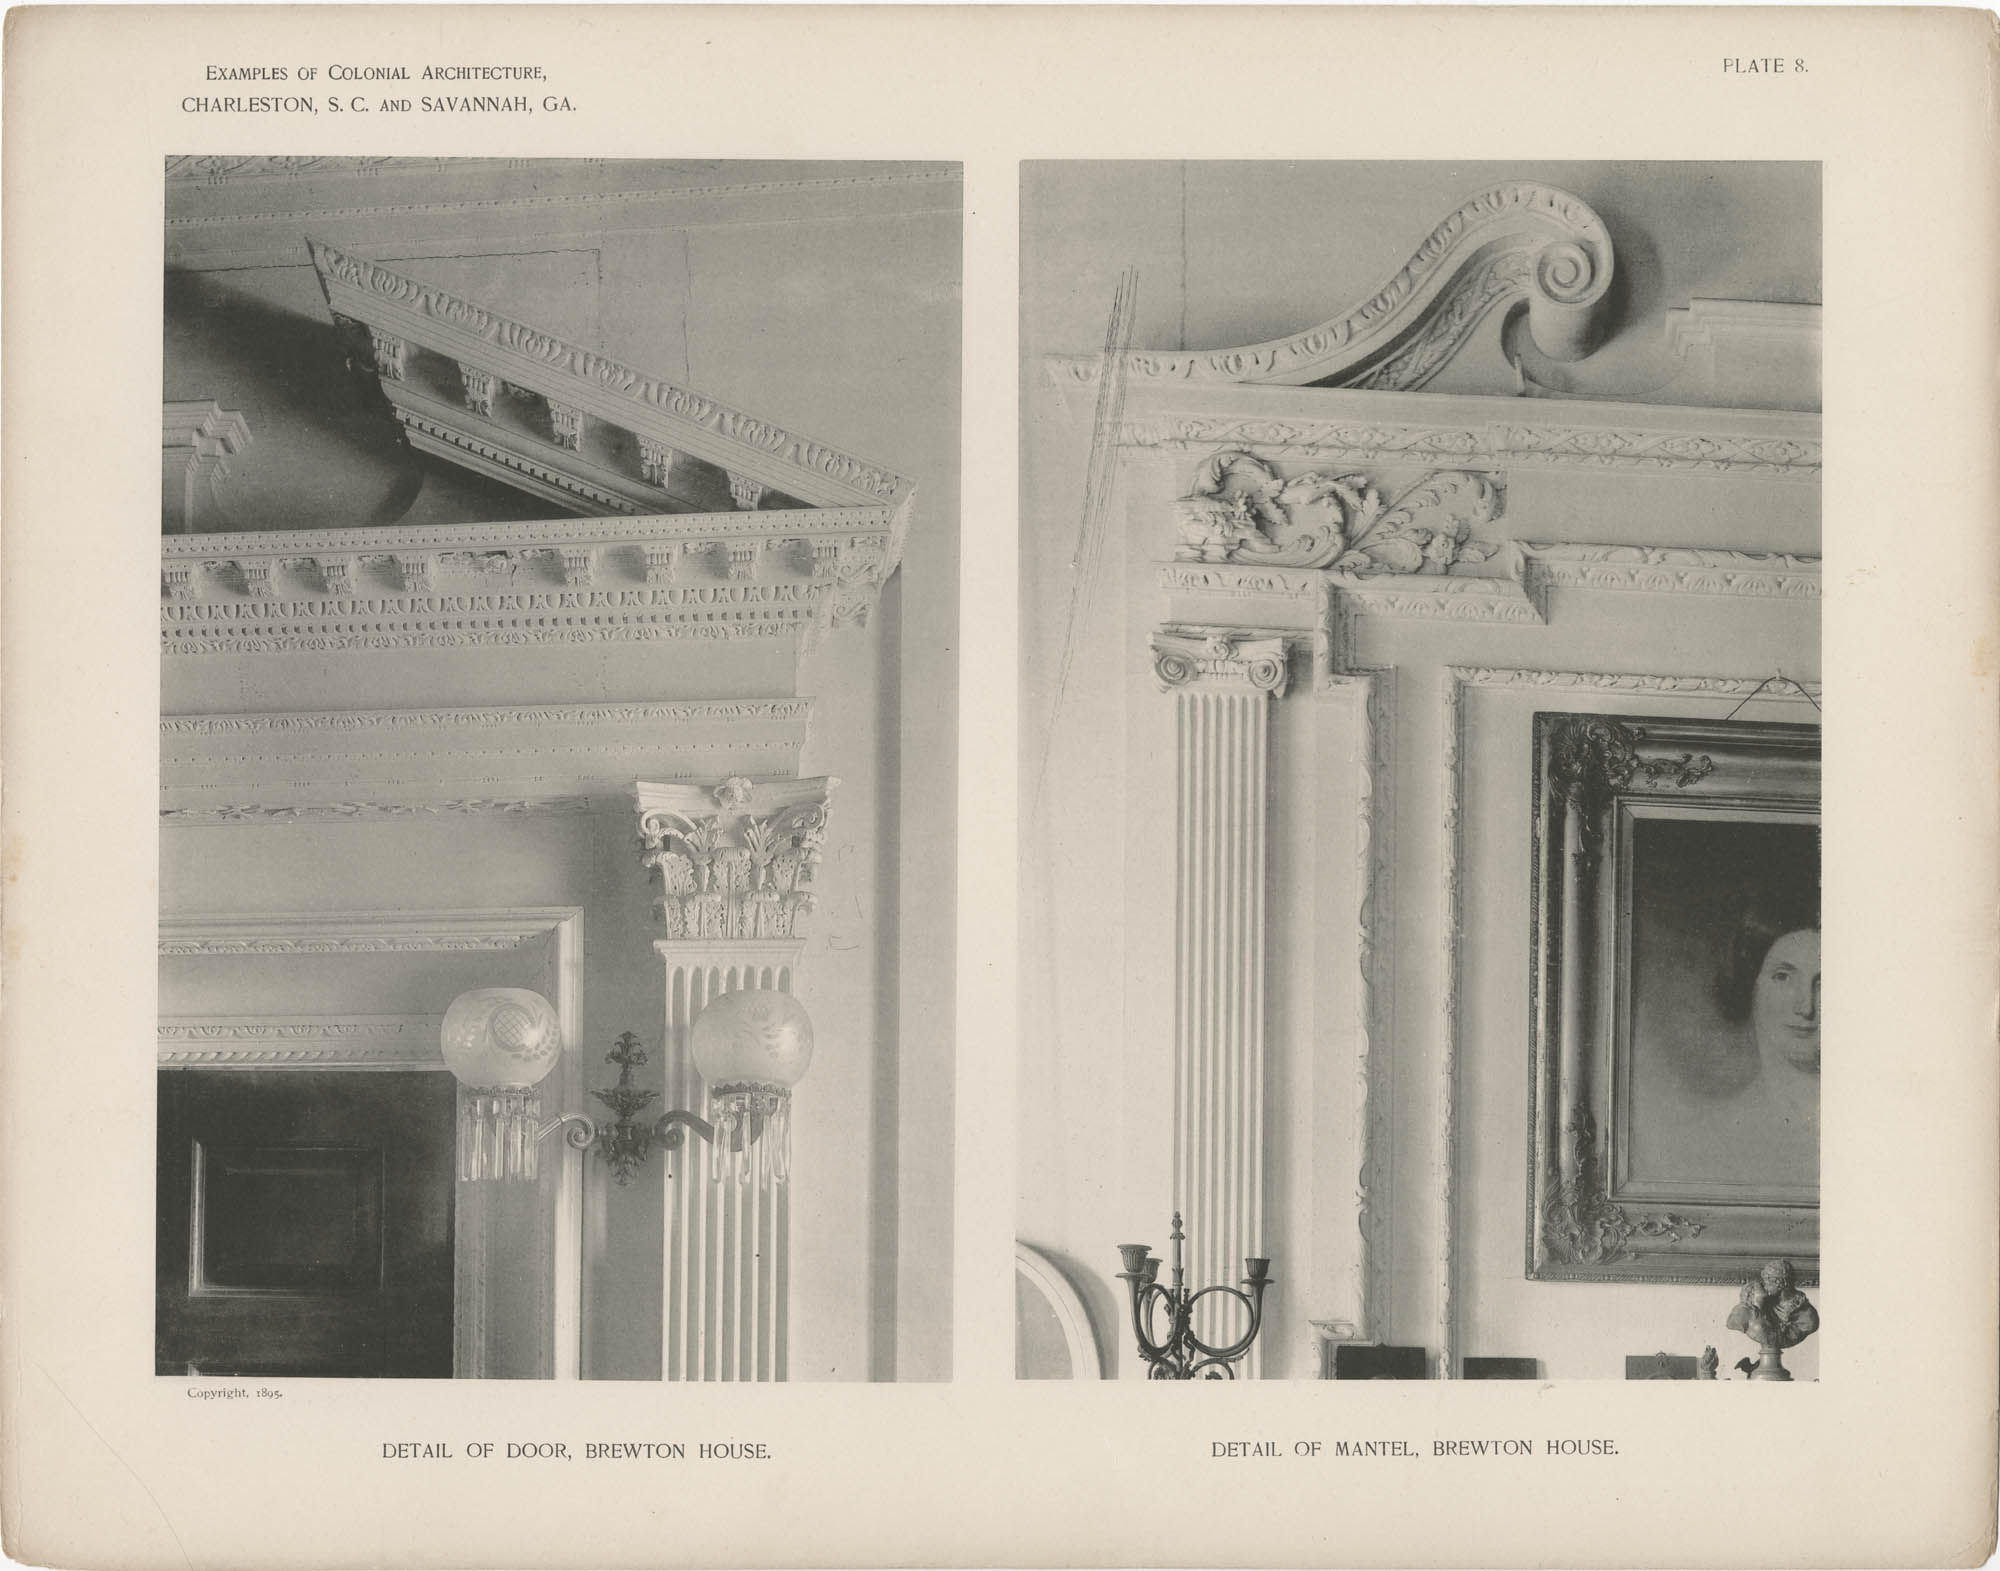 Plate 8: Detail of Door and Detail of Mantel, Brewton House